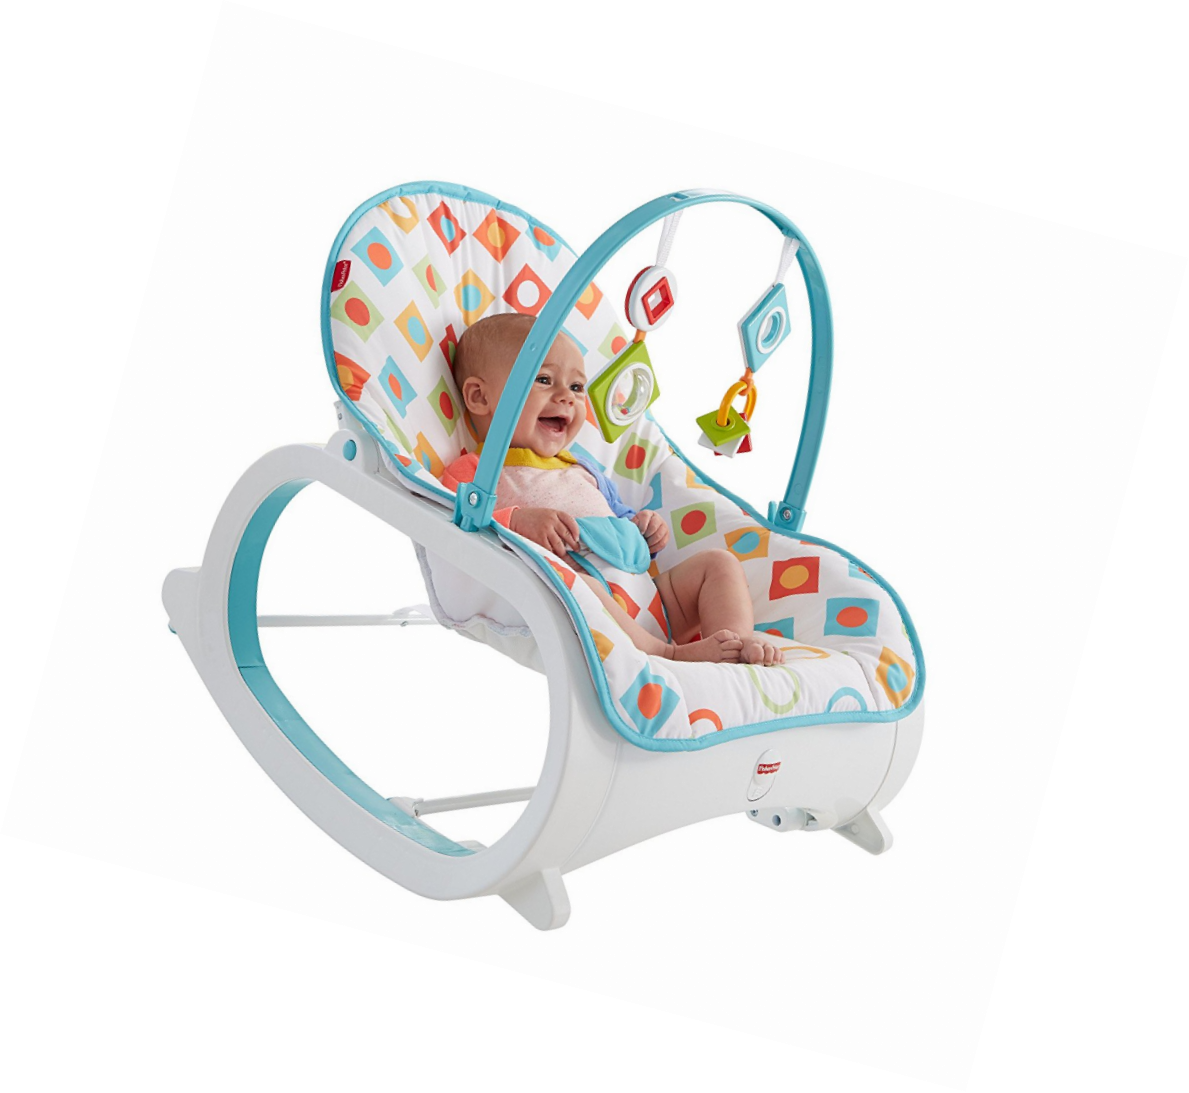 Infant To Toddler Rocker Bouncer Seat Baby Chair Sleeper Swing Toy Portable Baby Chair Bouncer Seat Baby Seat